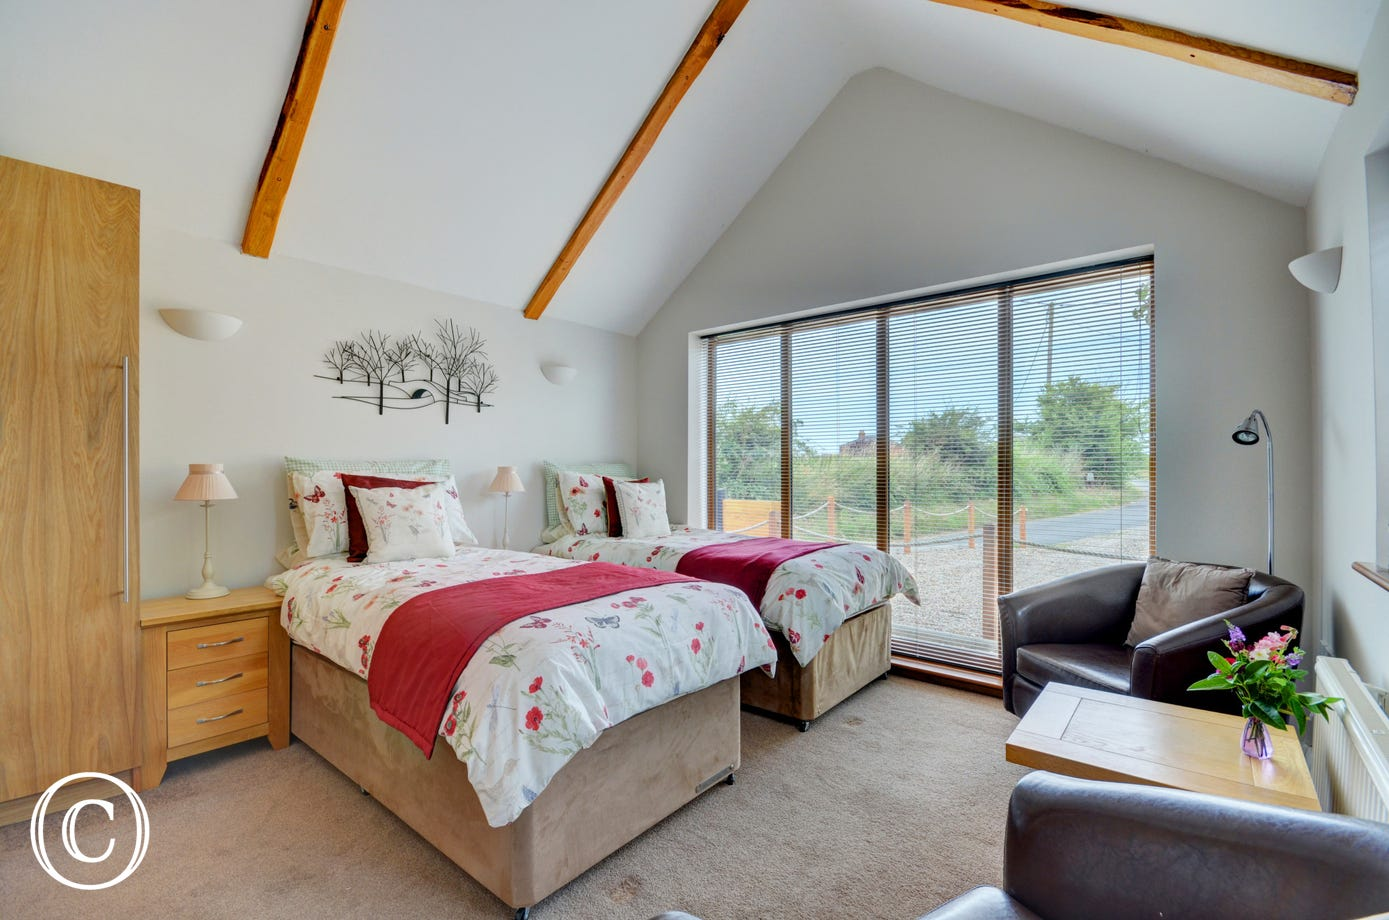 The bed is well-positioned for views through the patio doors.